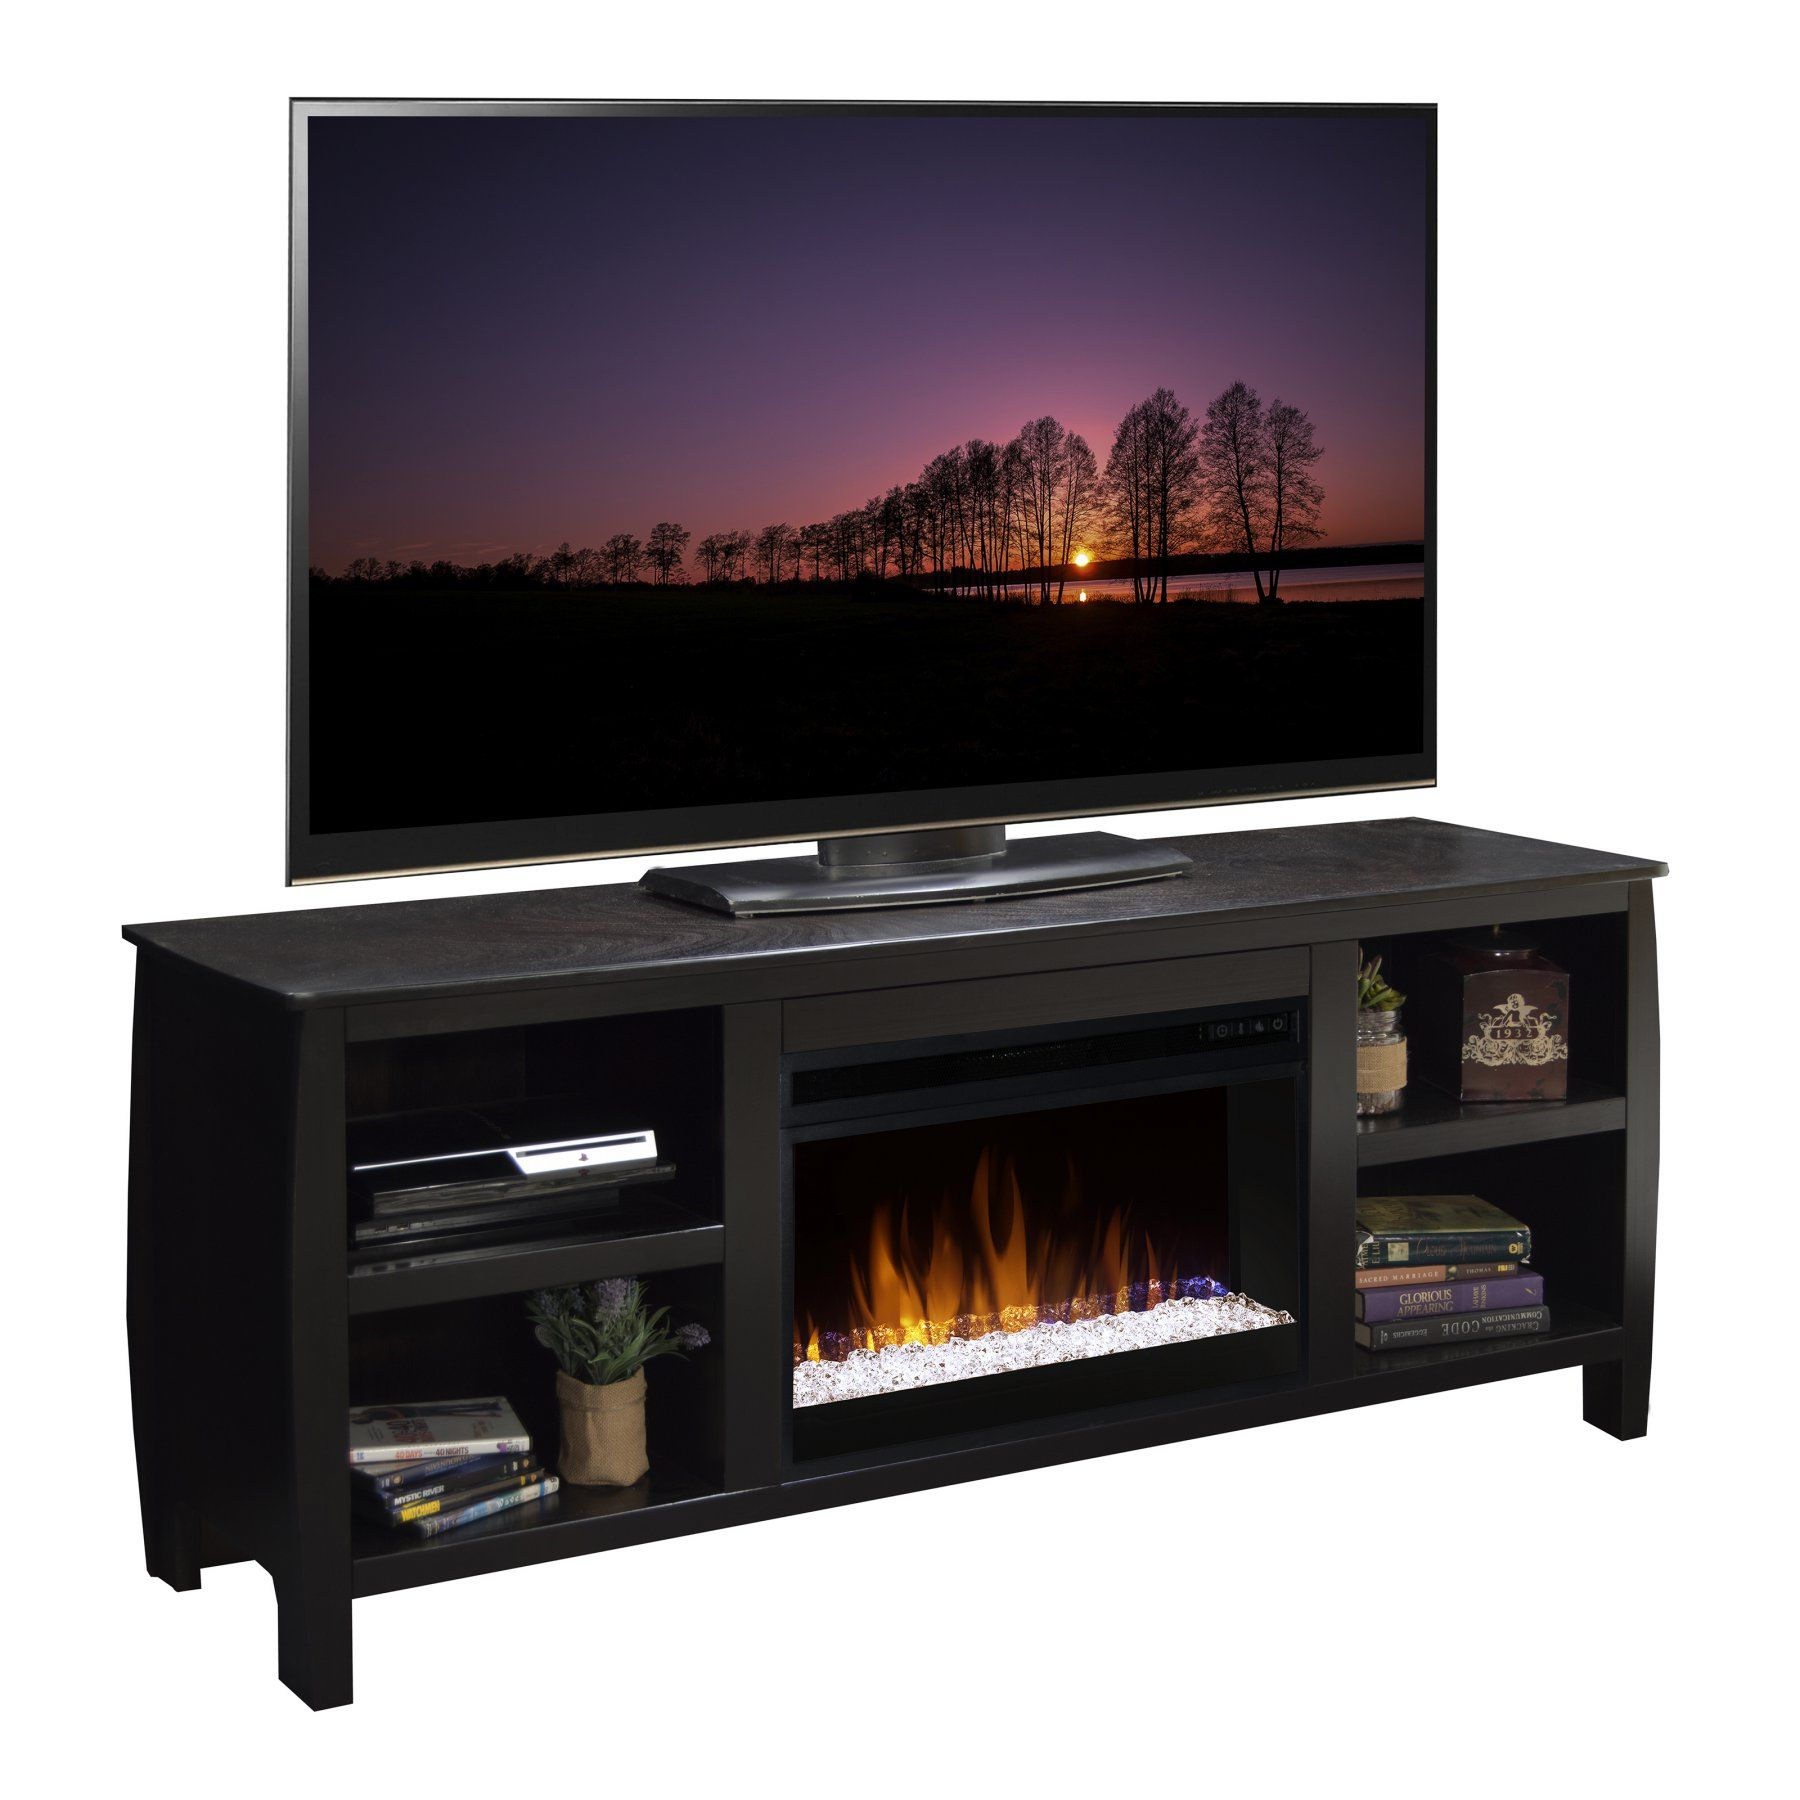 Legends Furniture Curve in Electric Media Fireplace CVMOC